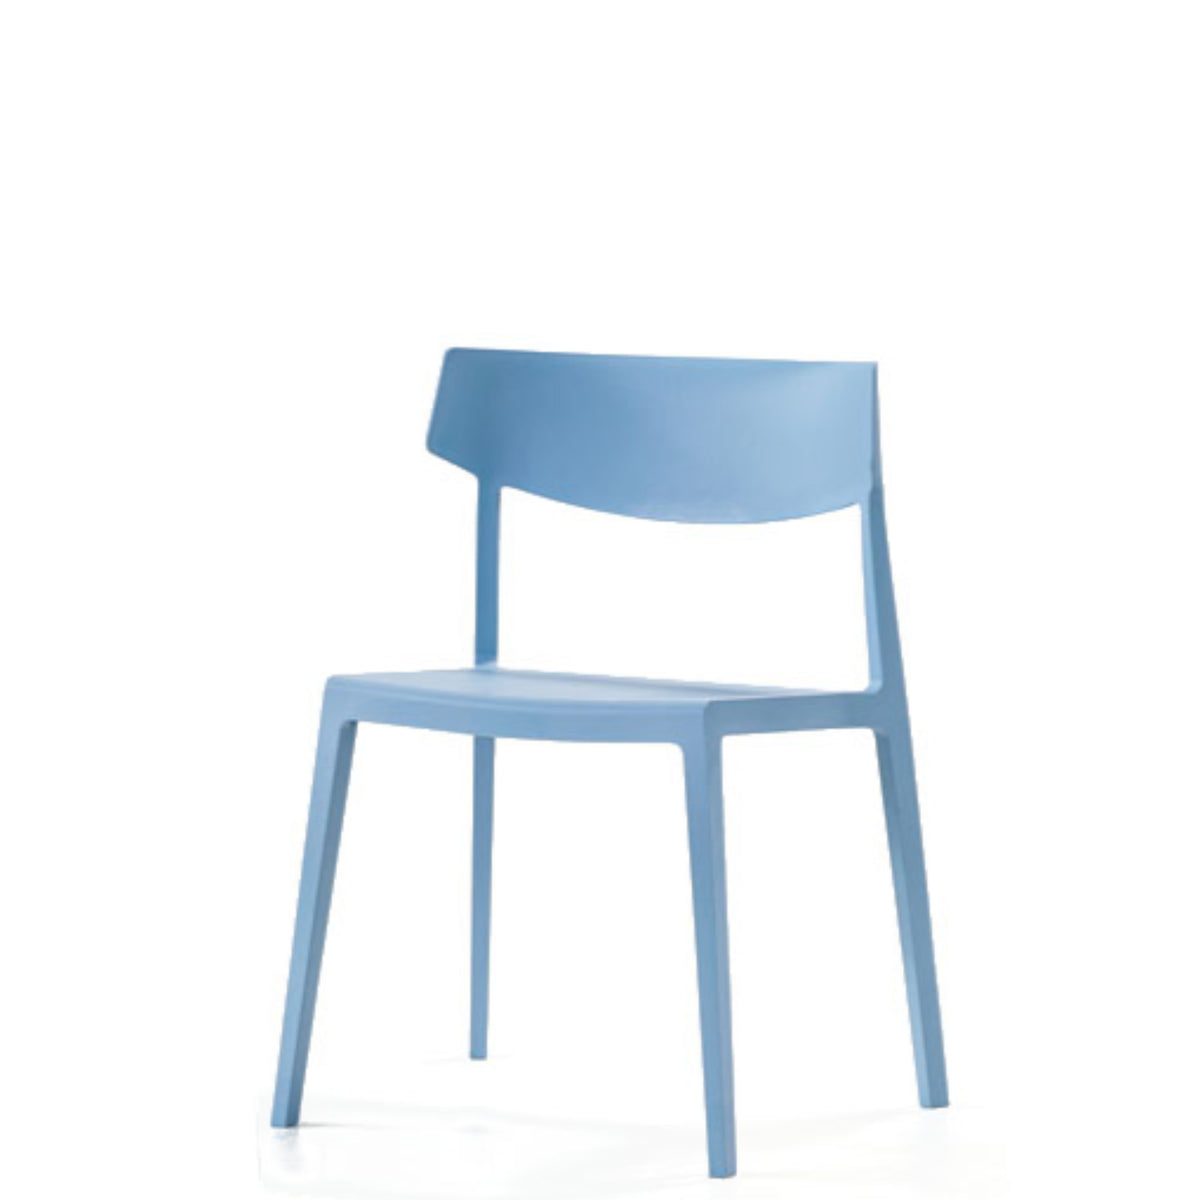 Actiu - Wing Stackable Chair - Set of Four - Light Blue - Pack of 4 Chairs